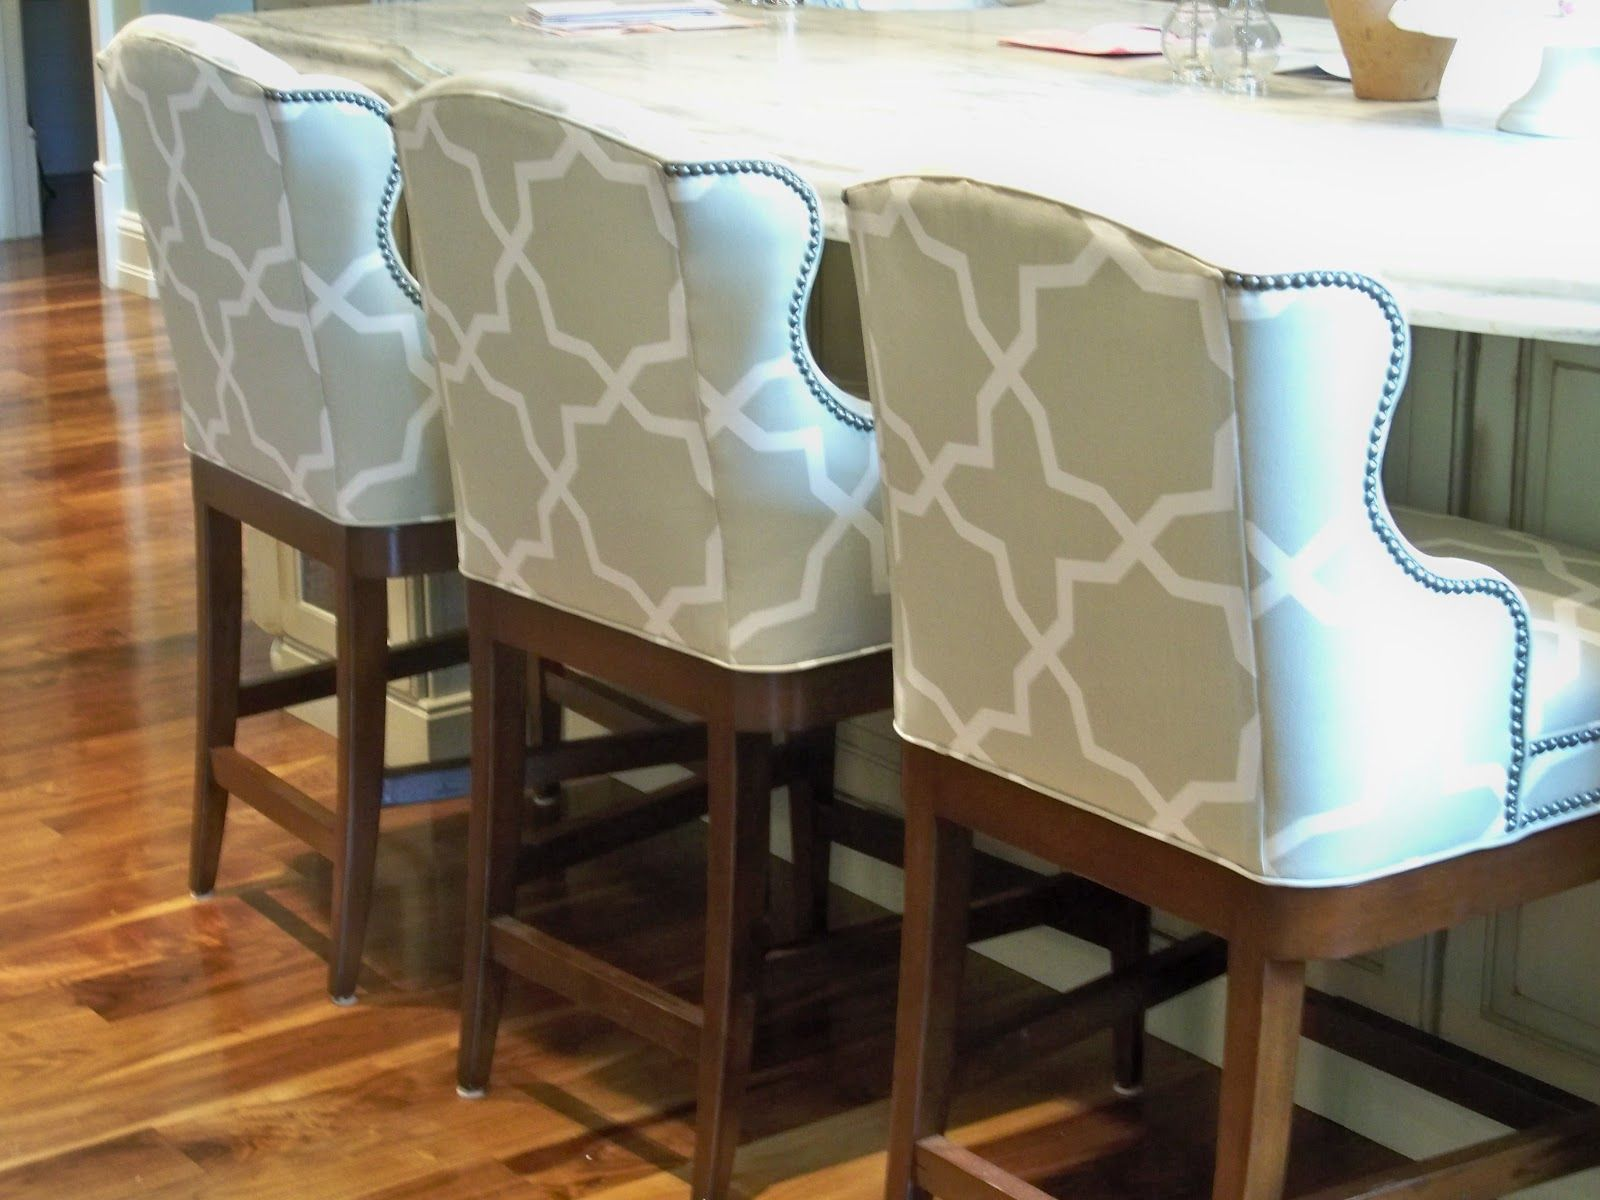 Victoria Dreste Designs A New Home Part Two Vanguard counter stools with Kravet outdoor fabric & Victoria Dreste Designs: A New Home Part Two Vanguard counter ... islam-shia.org